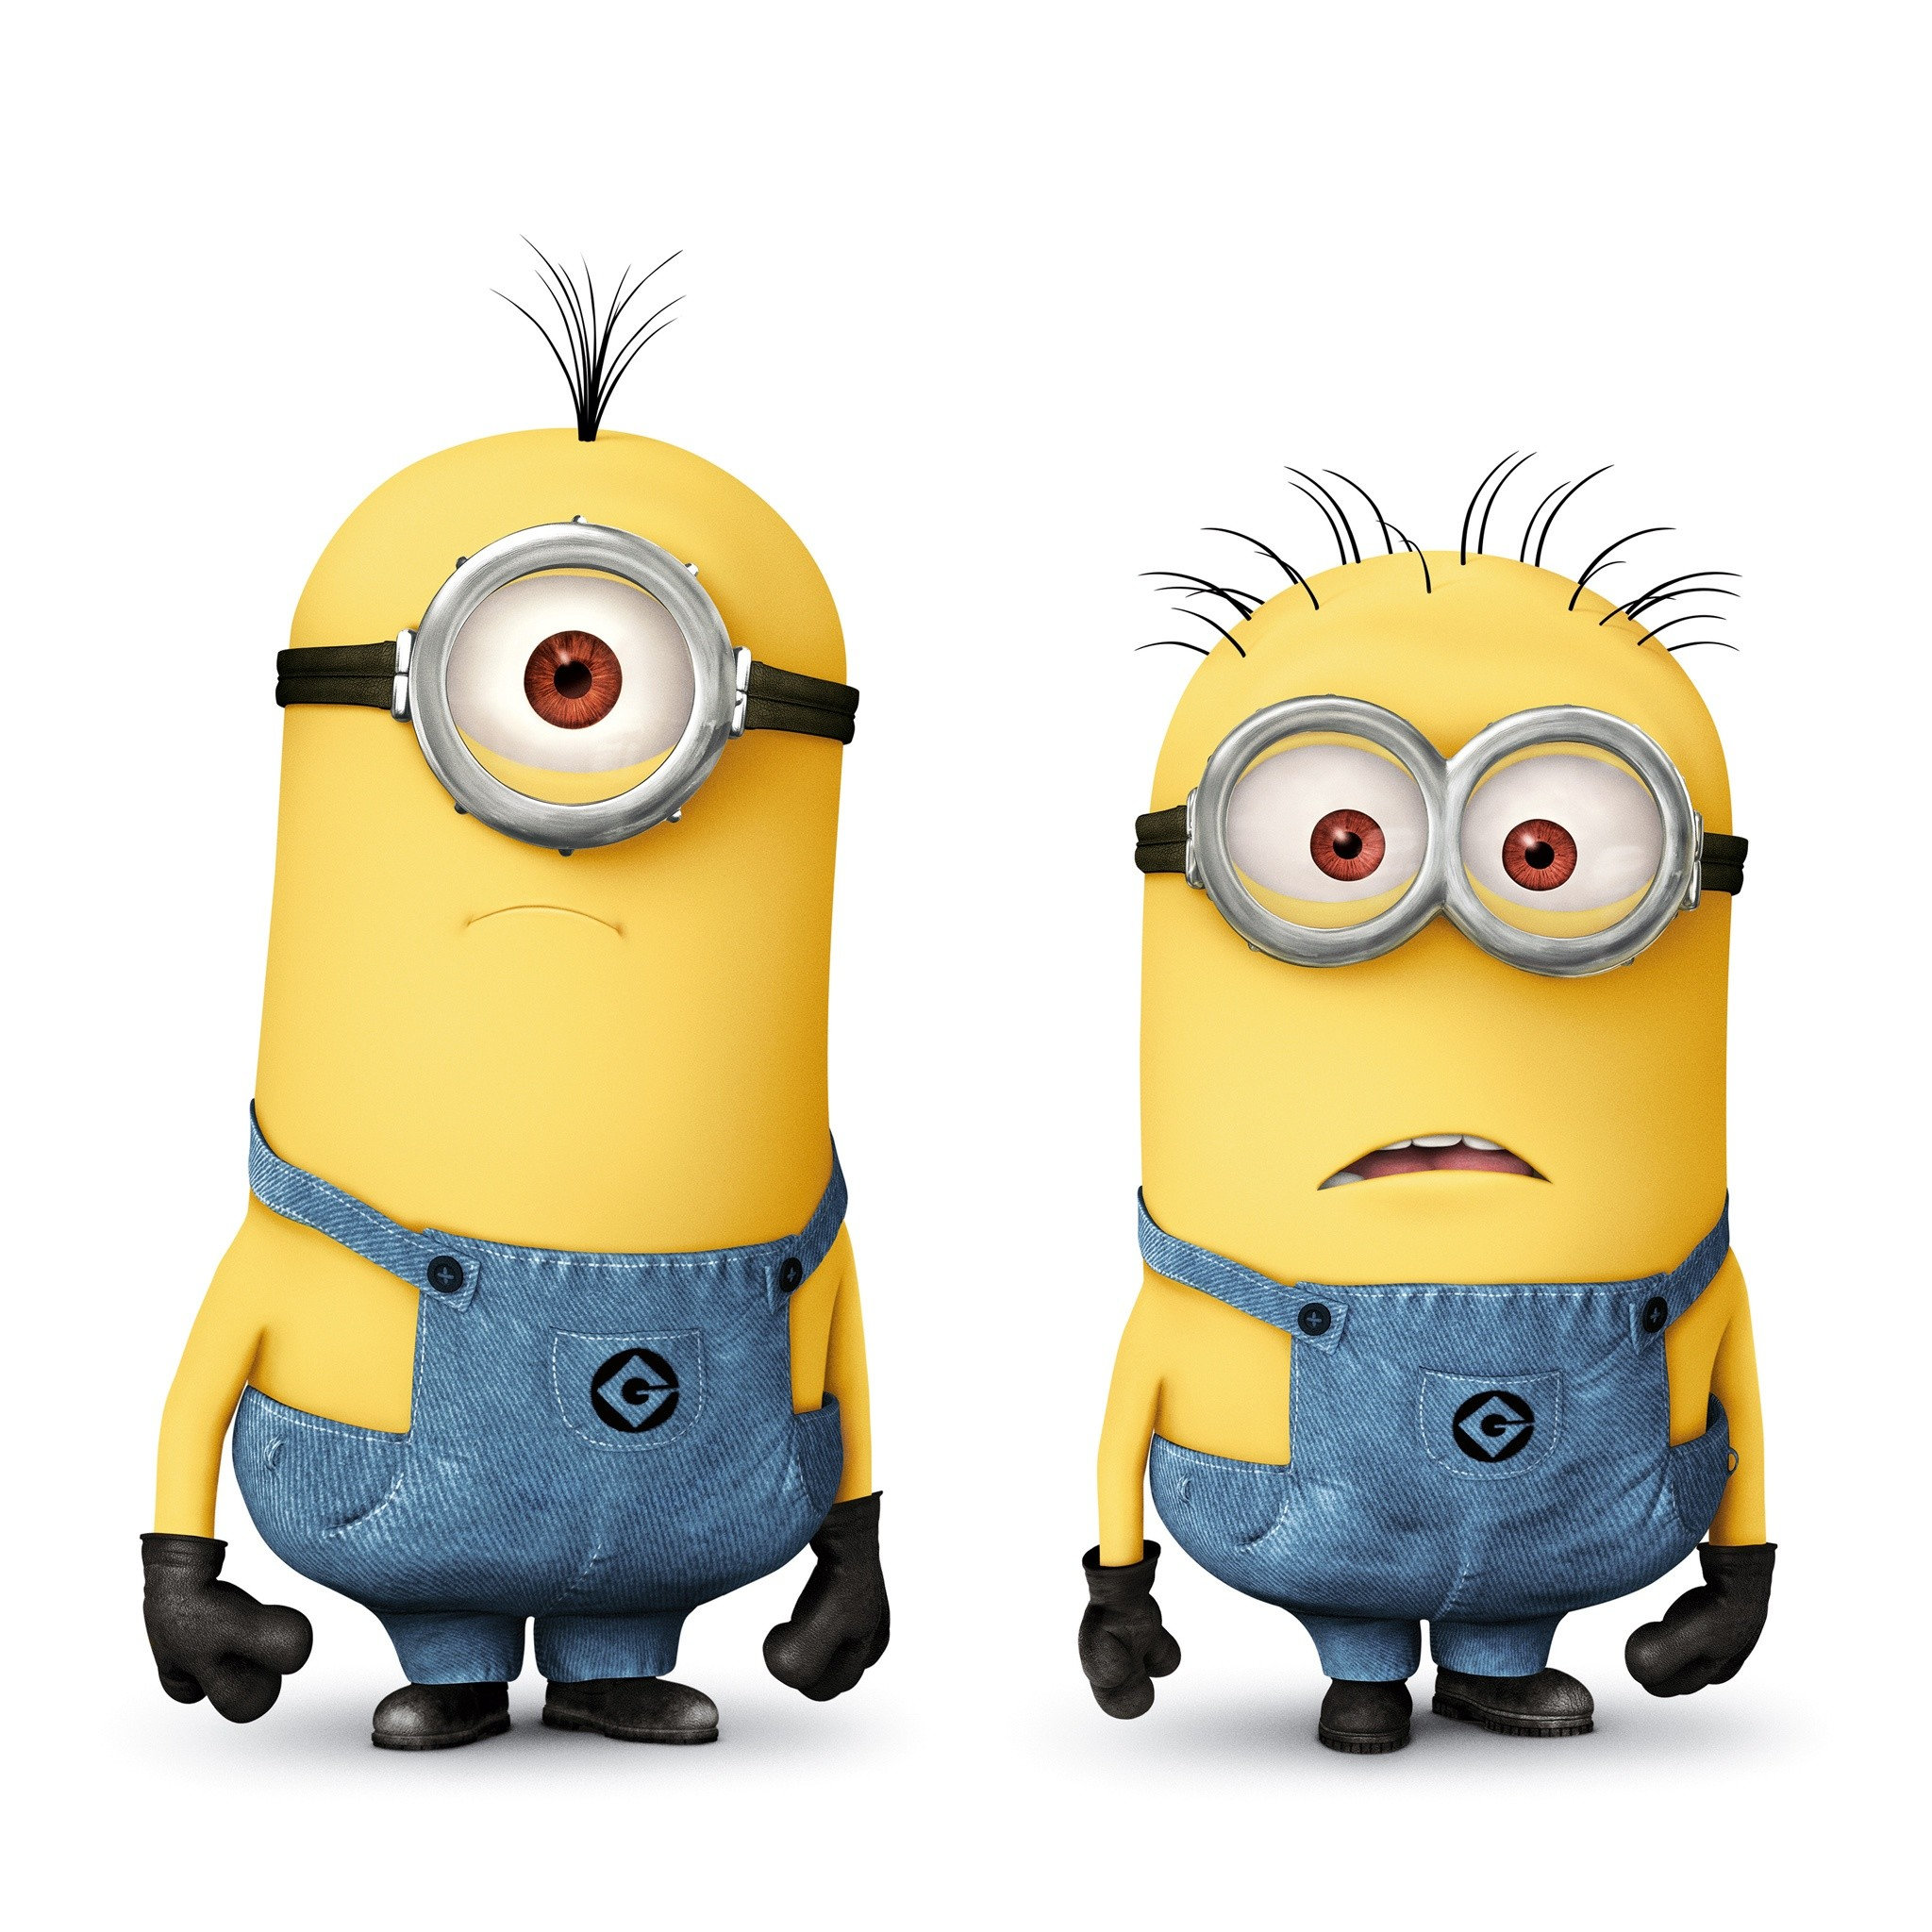 2048x2048 minions | Minions in Despicable Me 2 HD Wallpaper - iHD Wallpapers